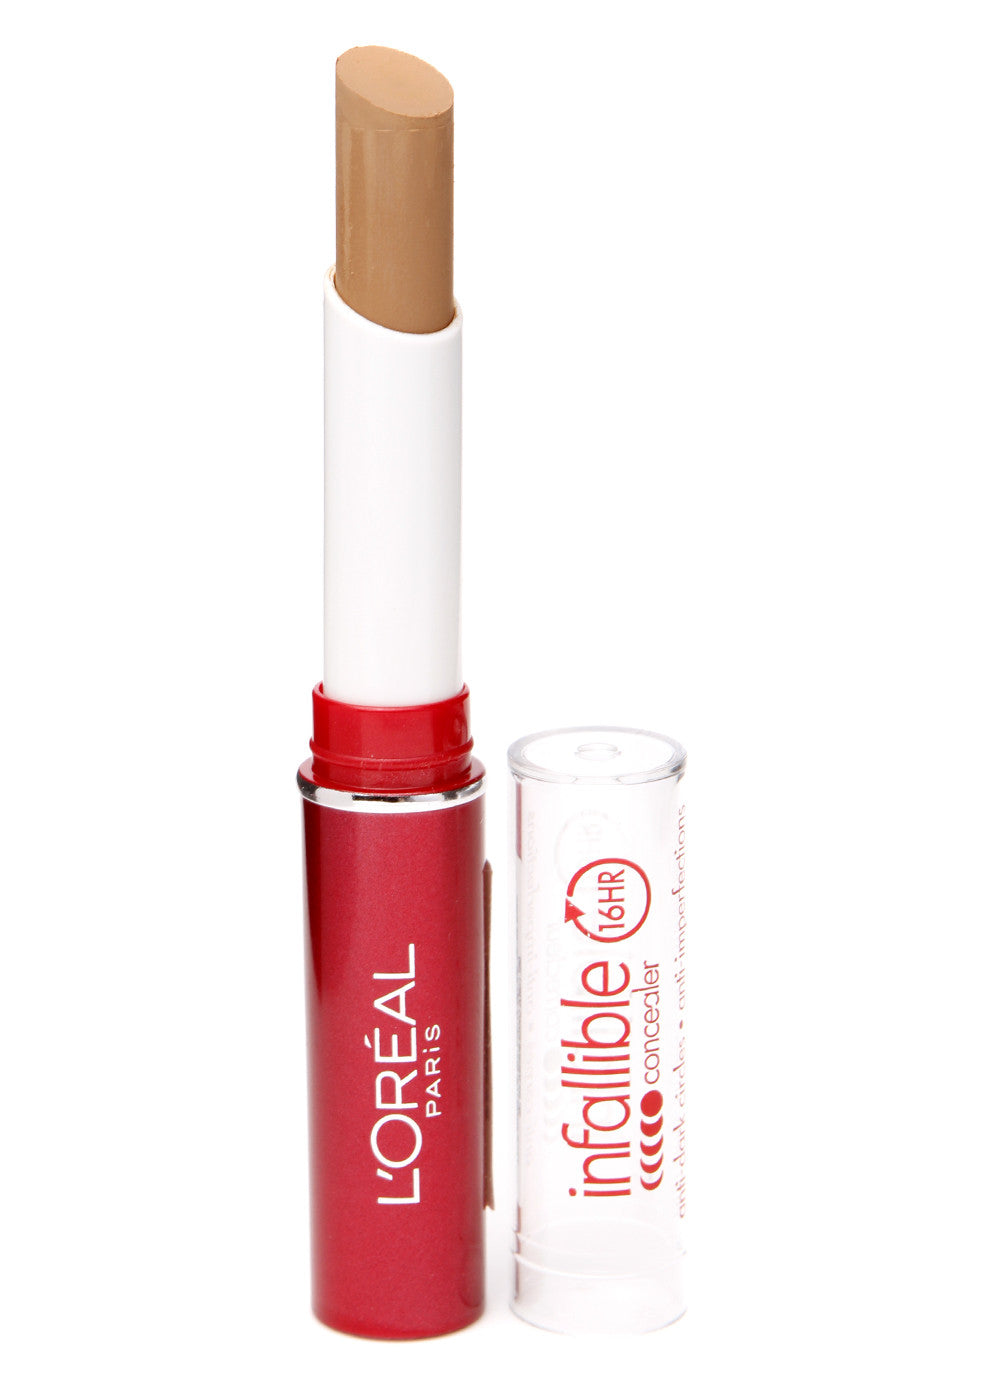 L'Oreal Infallible 16 Hour Concealer #684 Medium Deep